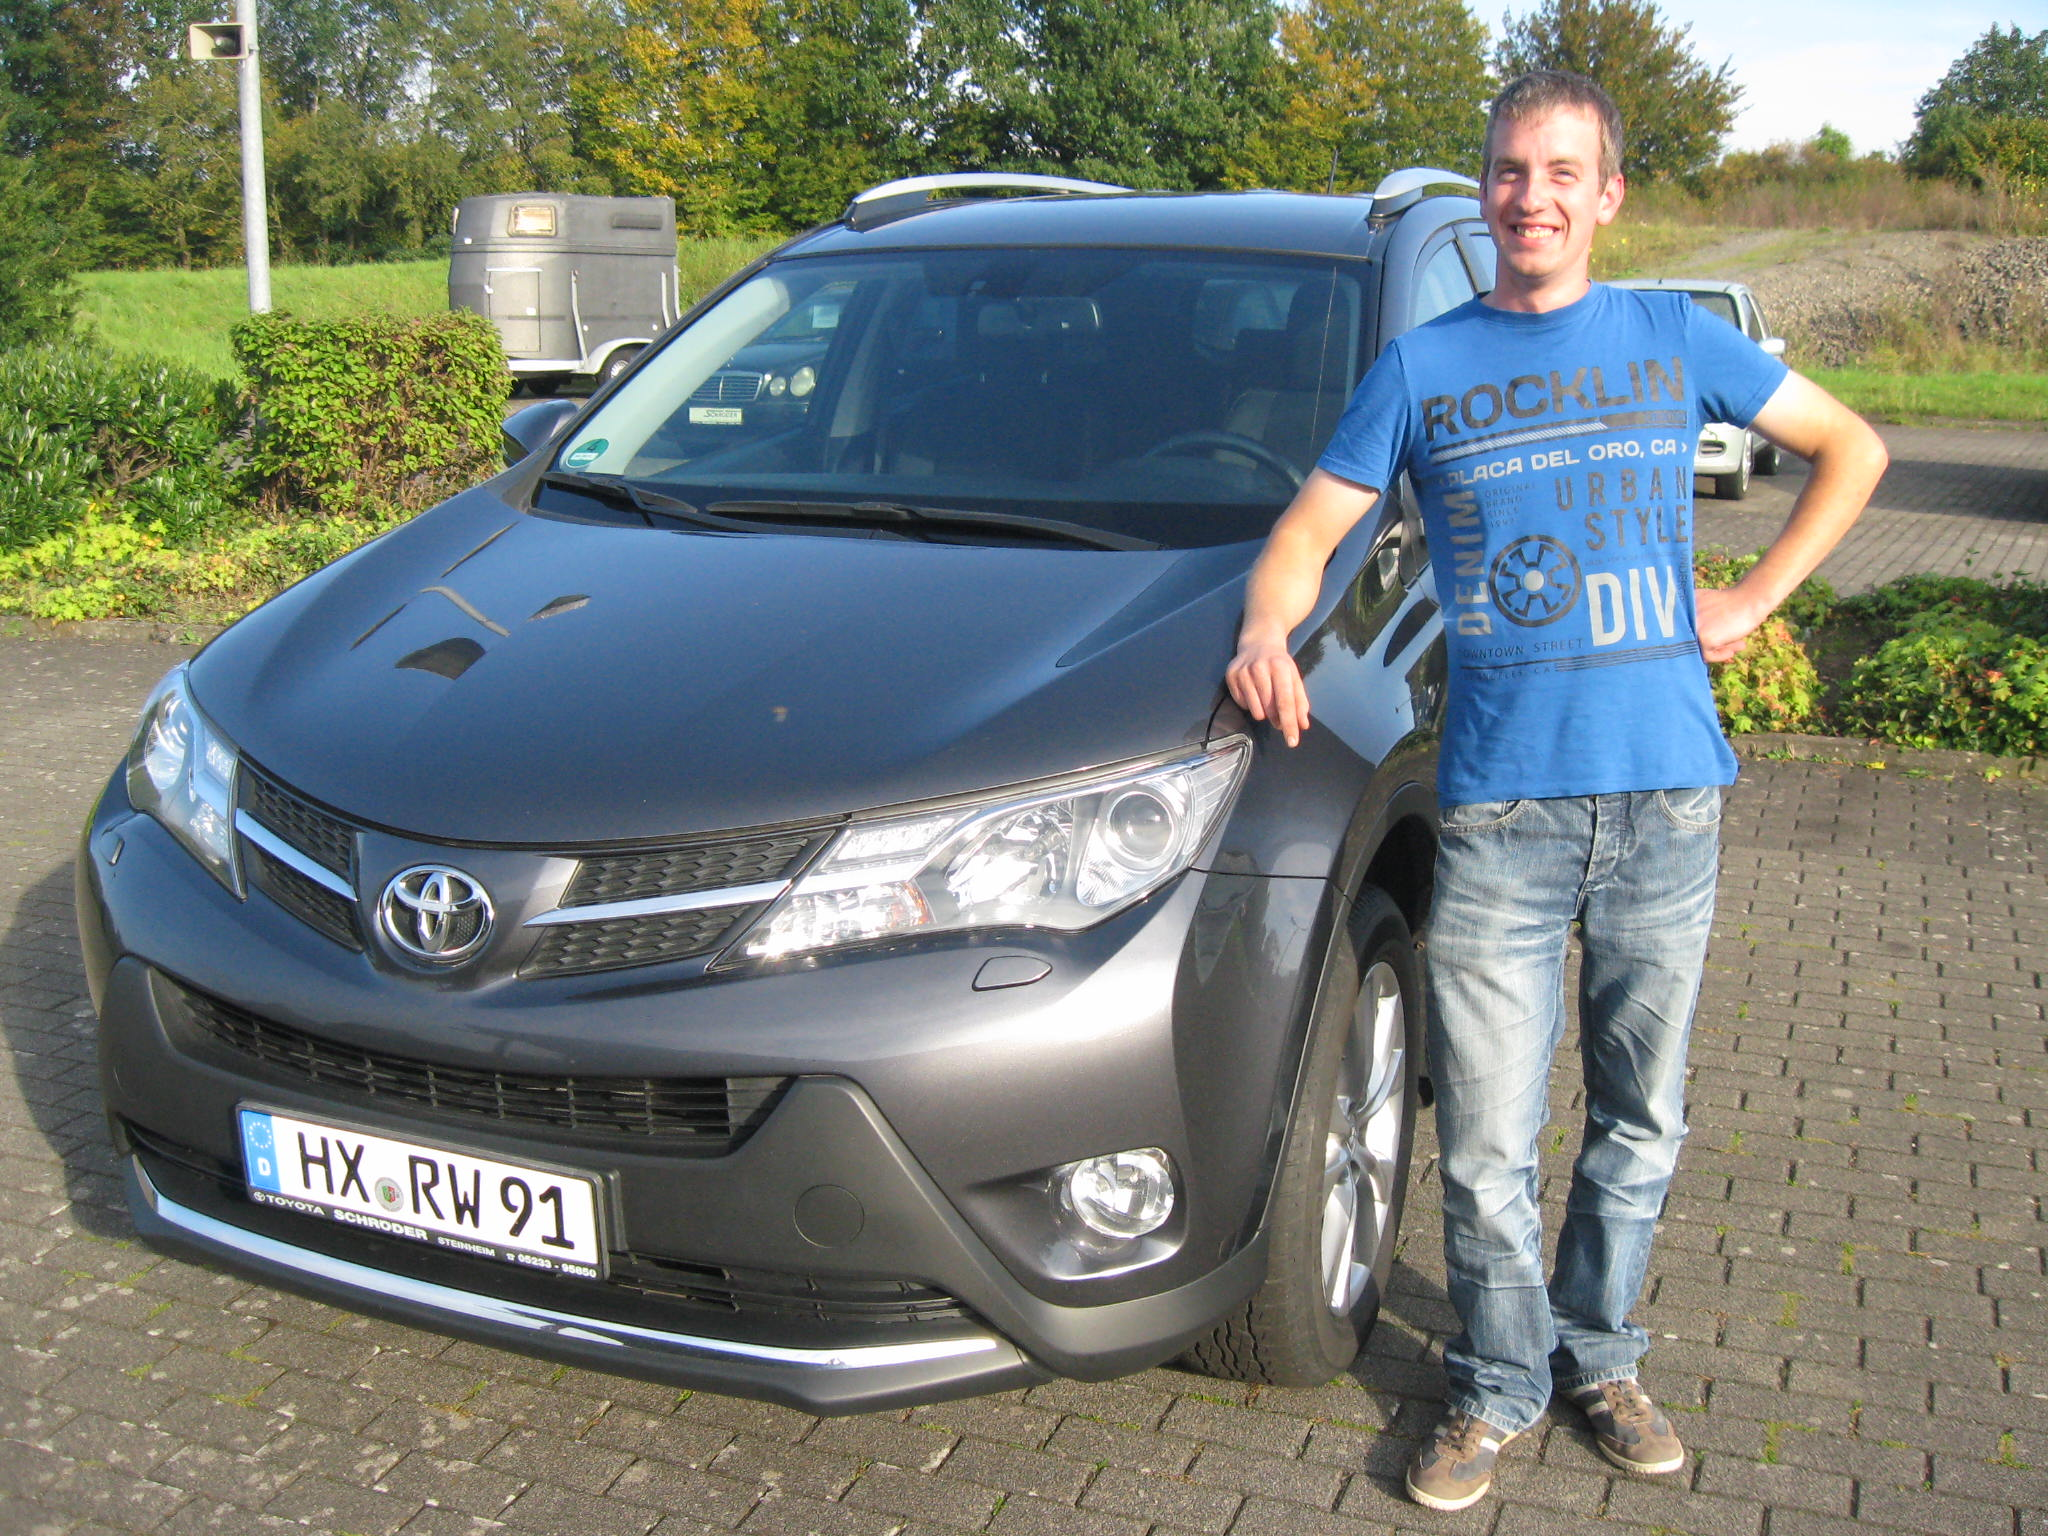 tl_files/toyota/img/autos/Wiesemeyer_RAV.-4.JPG